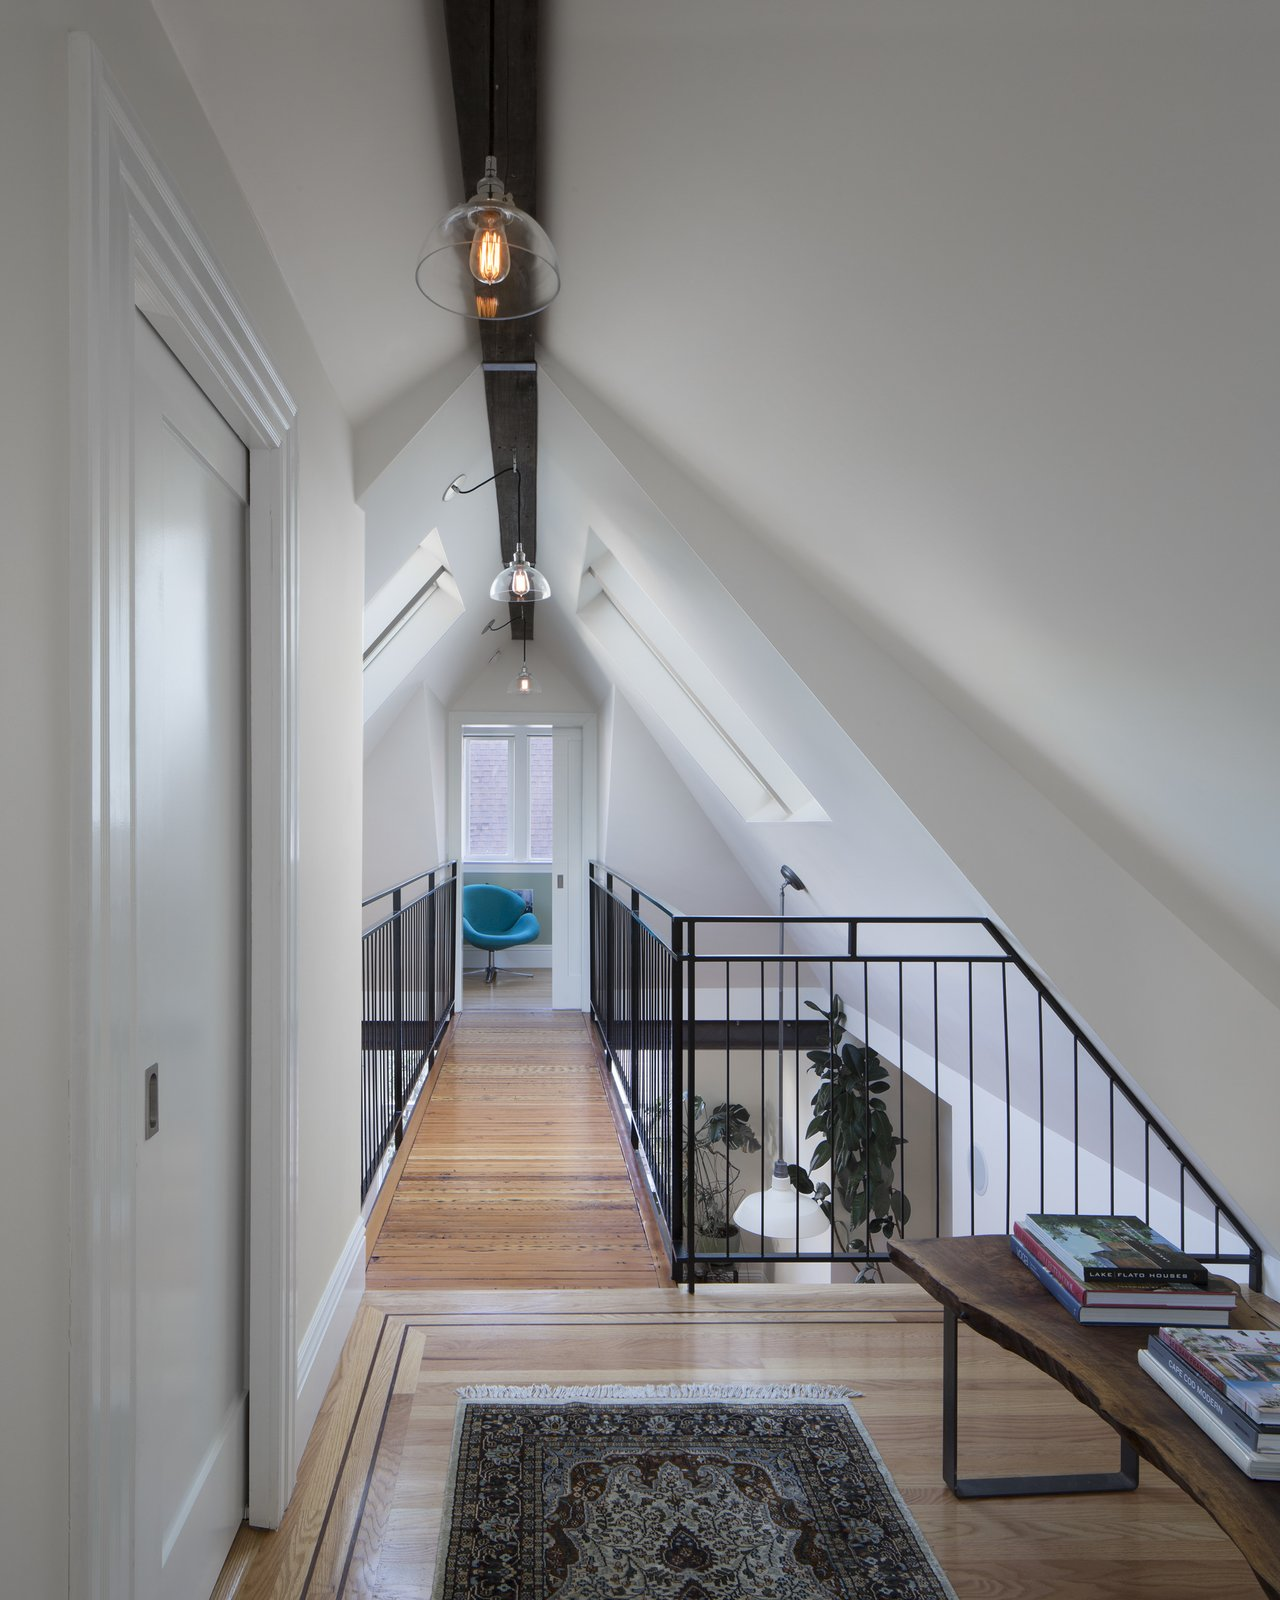 Hallway and Light Hardwood Floor former attic space now living space, view across bridge  Bridge House by McElroy Architecture